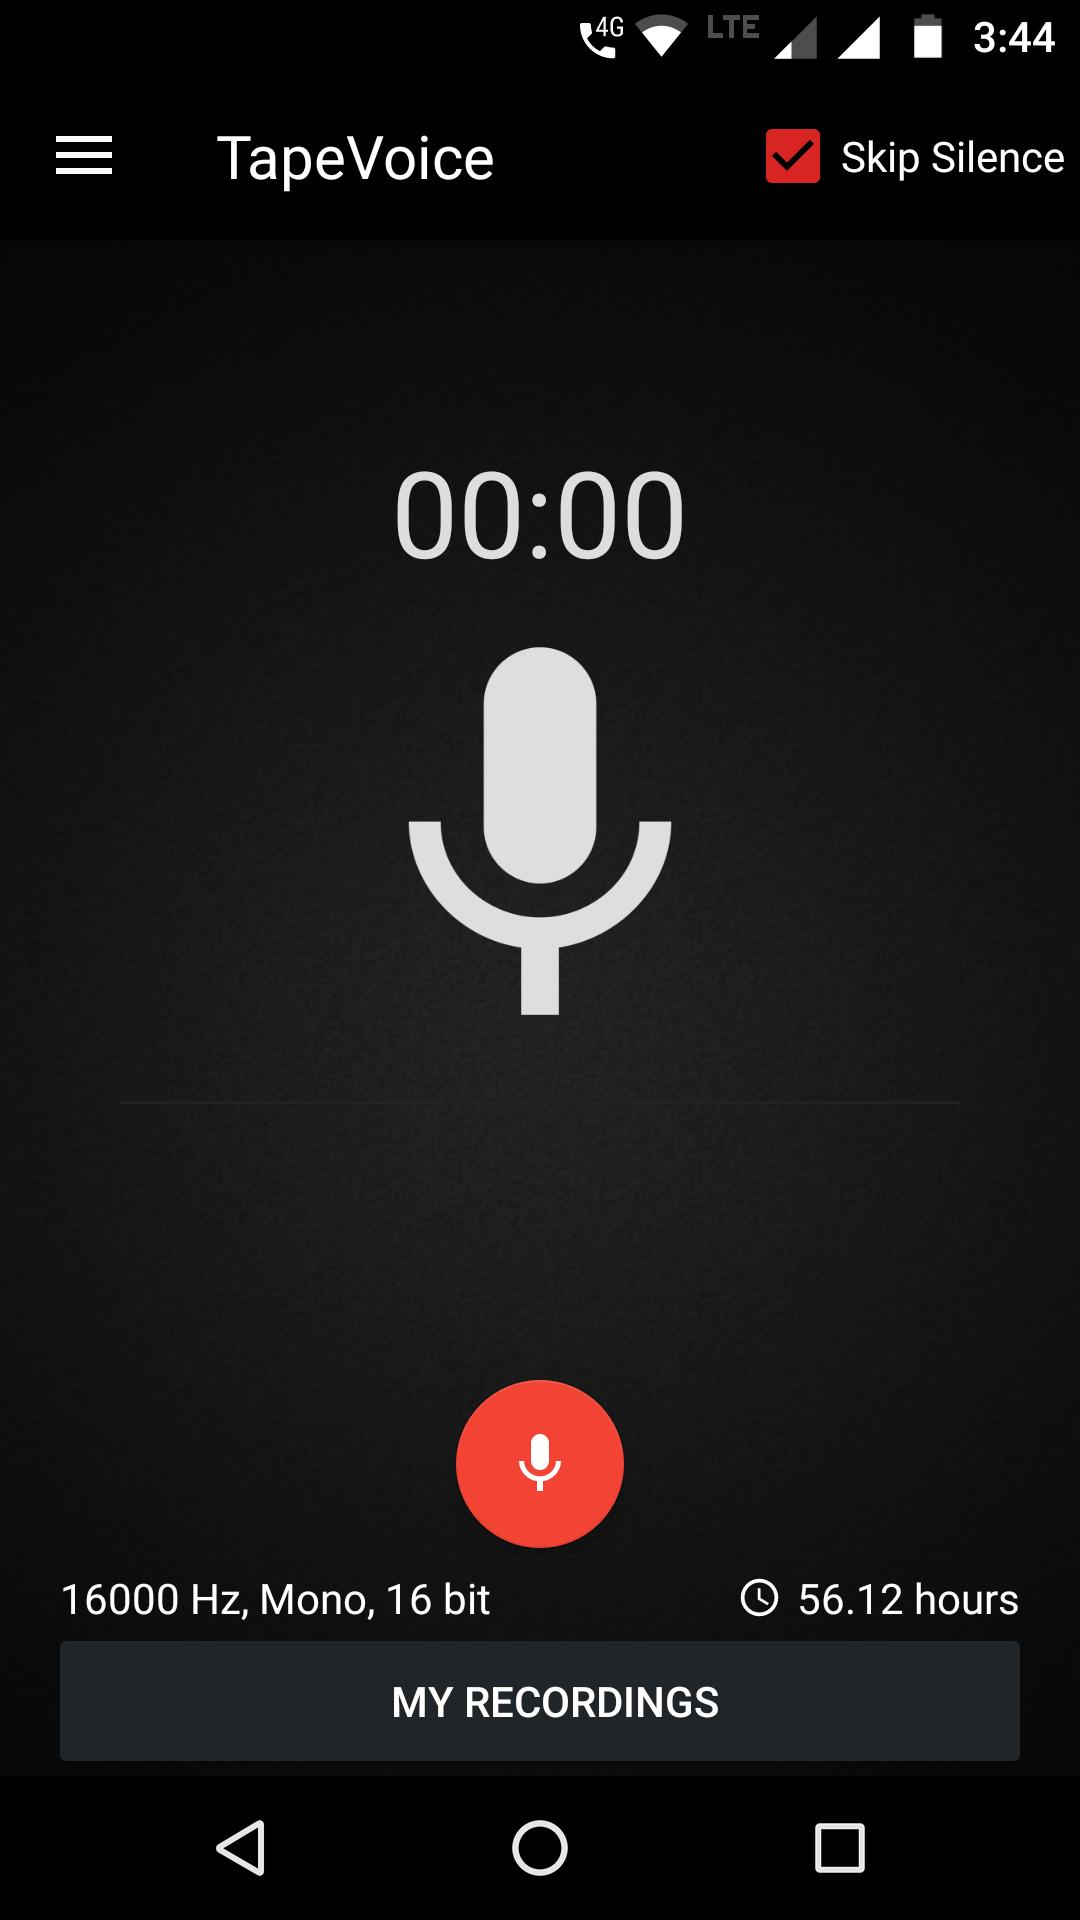 Smart Recorder , Voice Recorder - TapeVoice for Android - APK Download